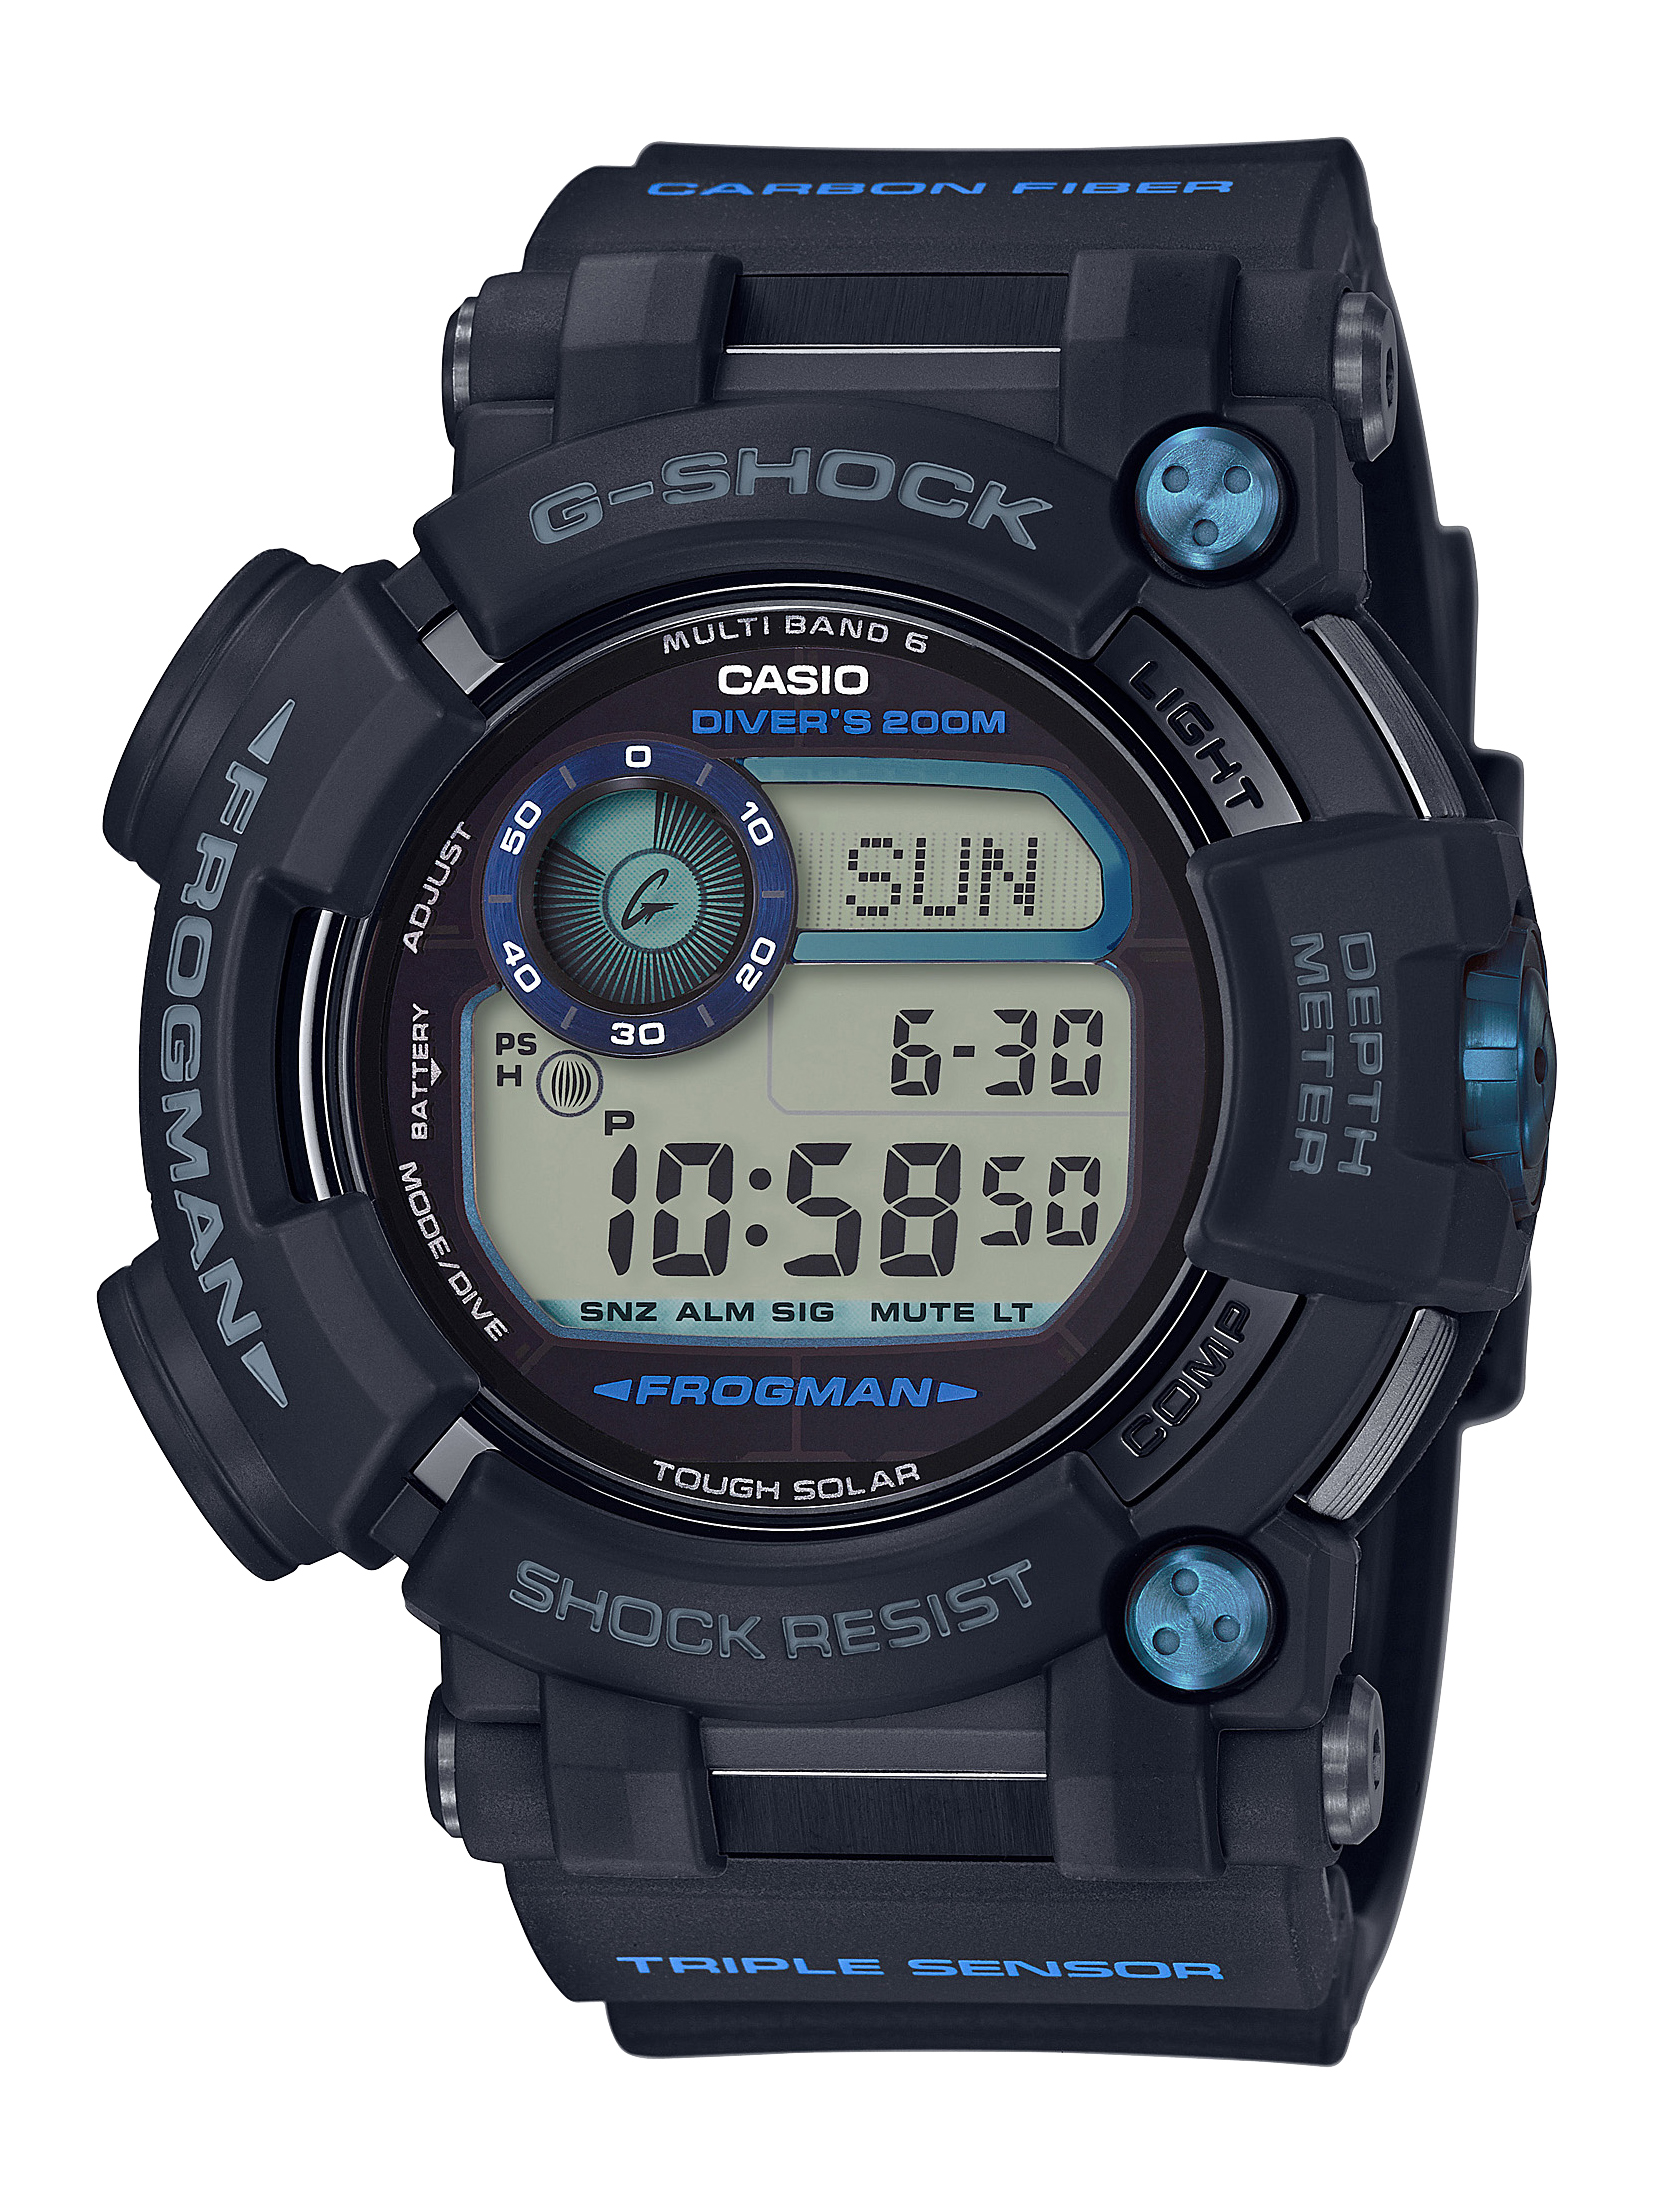 Casio's New G-SHOCK Master of G FROGMAN Dive Watch